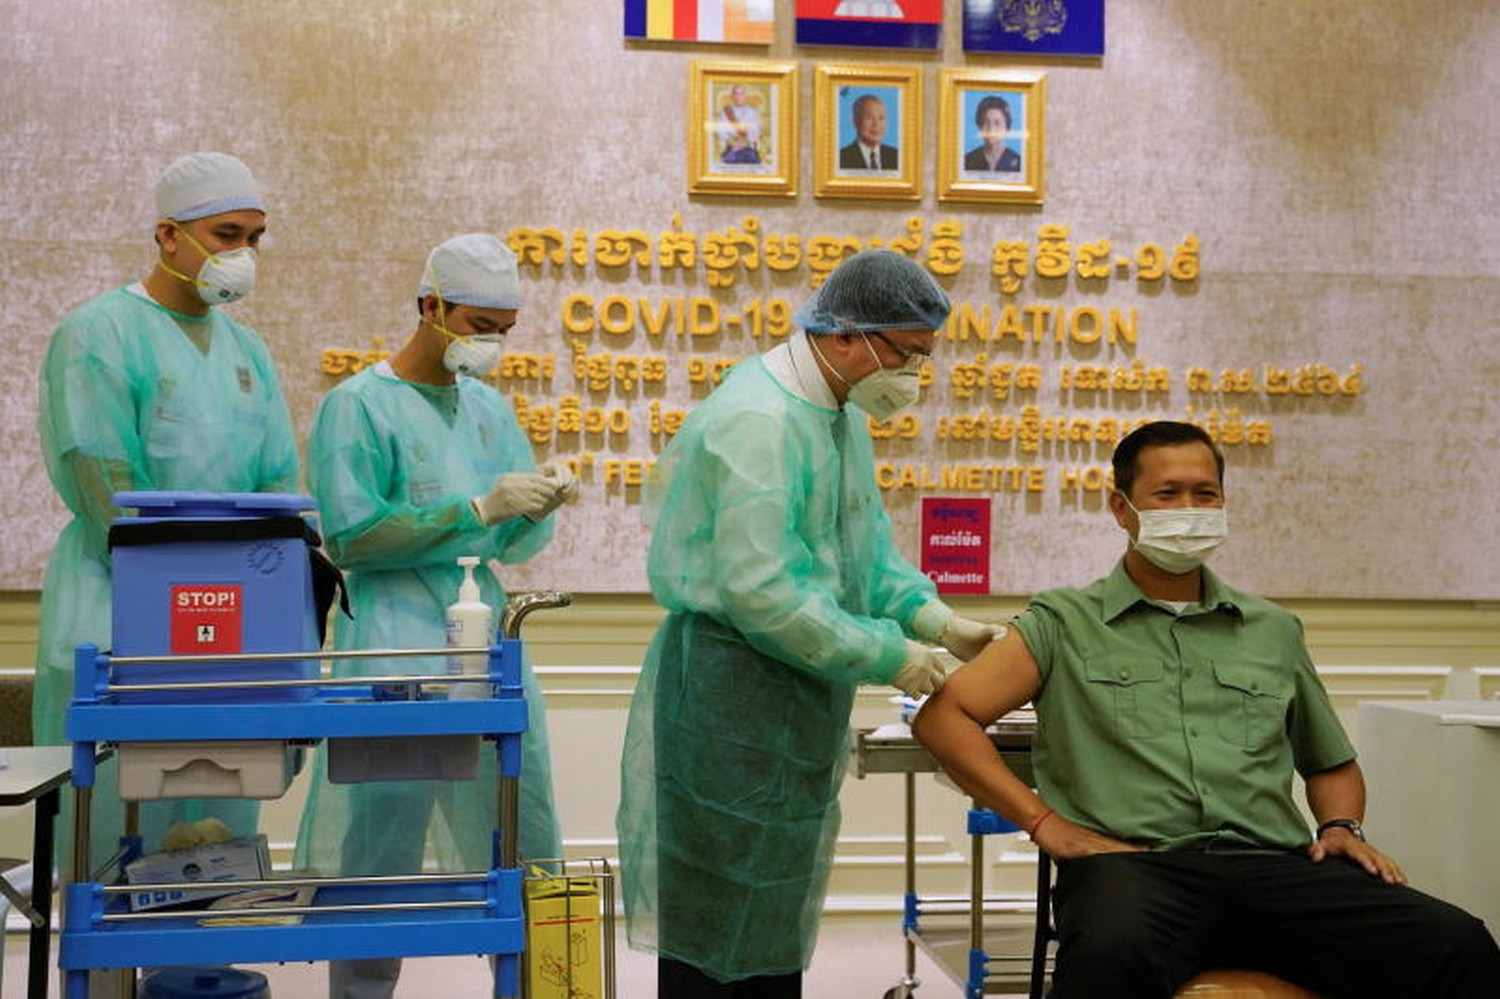 Hun Manet, the son of Cambodia's Prime Minster Hun Sen gets a vaccine shot  as  Cambodia starts its coronavirus disease vaccine rollout with 600,000 doses of Sinopharm vaccine donated by China in Phnom Penh on Wednesday. (Photo: Reuters)